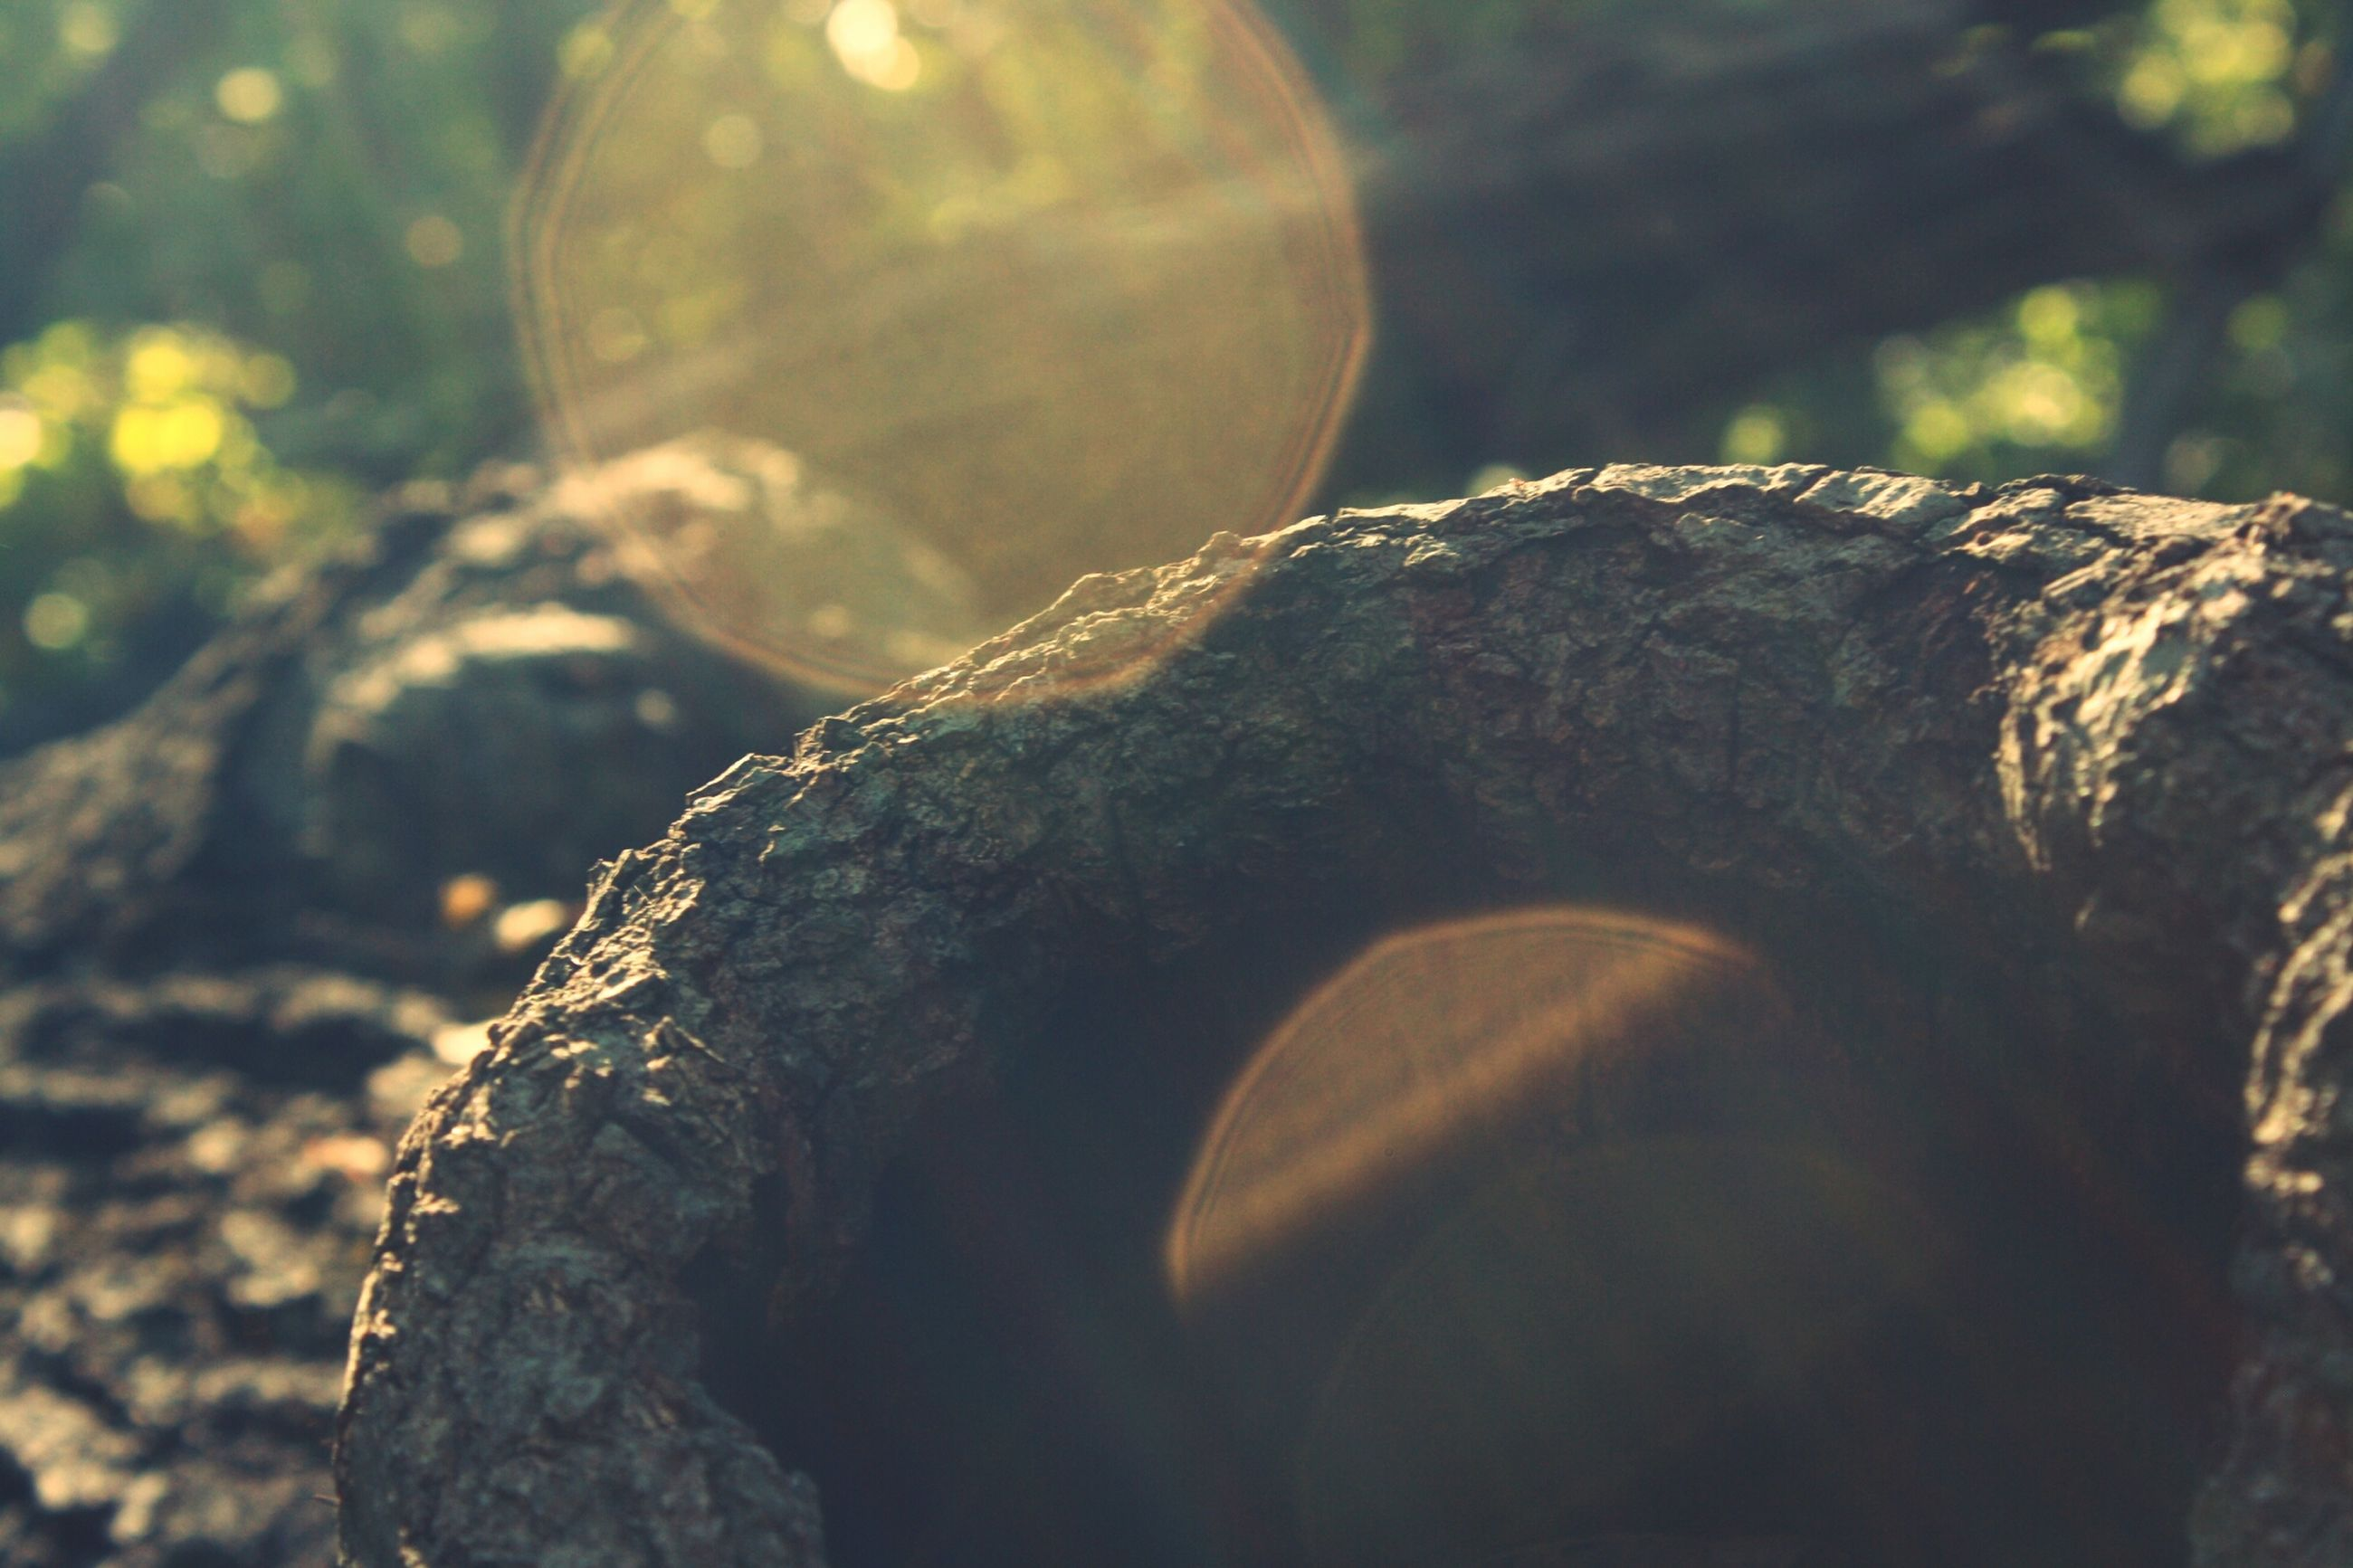 close-up, tree, sunlight, nature, rock - object, lens flare, textured, focus on foreground, outdoors, tranquility, tree trunk, day, natural pattern, beauty in nature, forest, part of, no people, rough, low angle view, growth